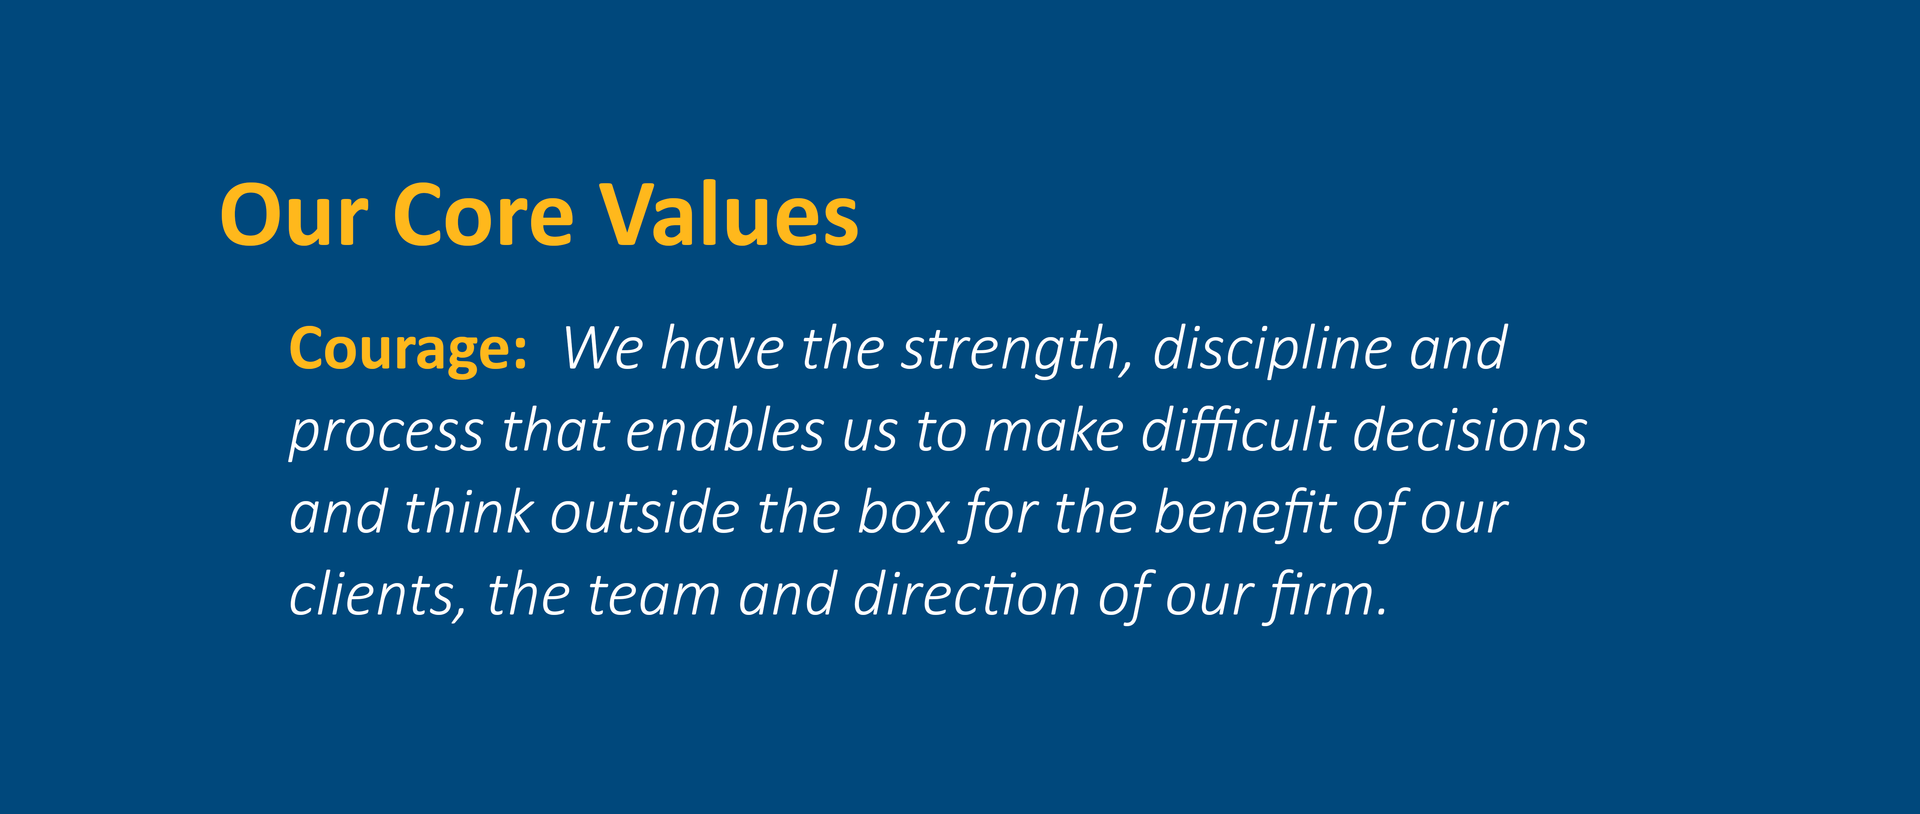 Courage:  We have the strength, discipline and process that enables us to make difficult decisions and think outside the box for the benefit of our clients, the team and direction of our firm.